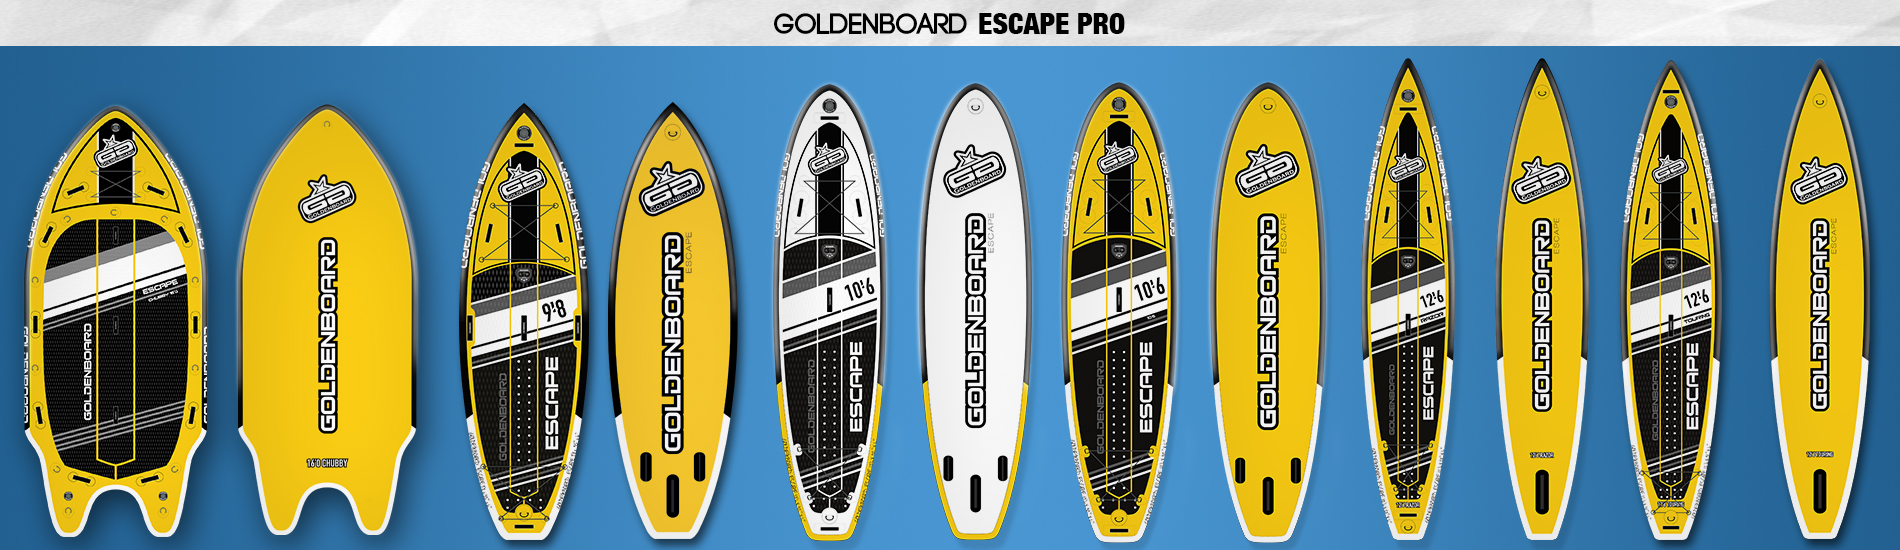 GOLDENBOARD Paddle - Page 15 ESCAPE-2016